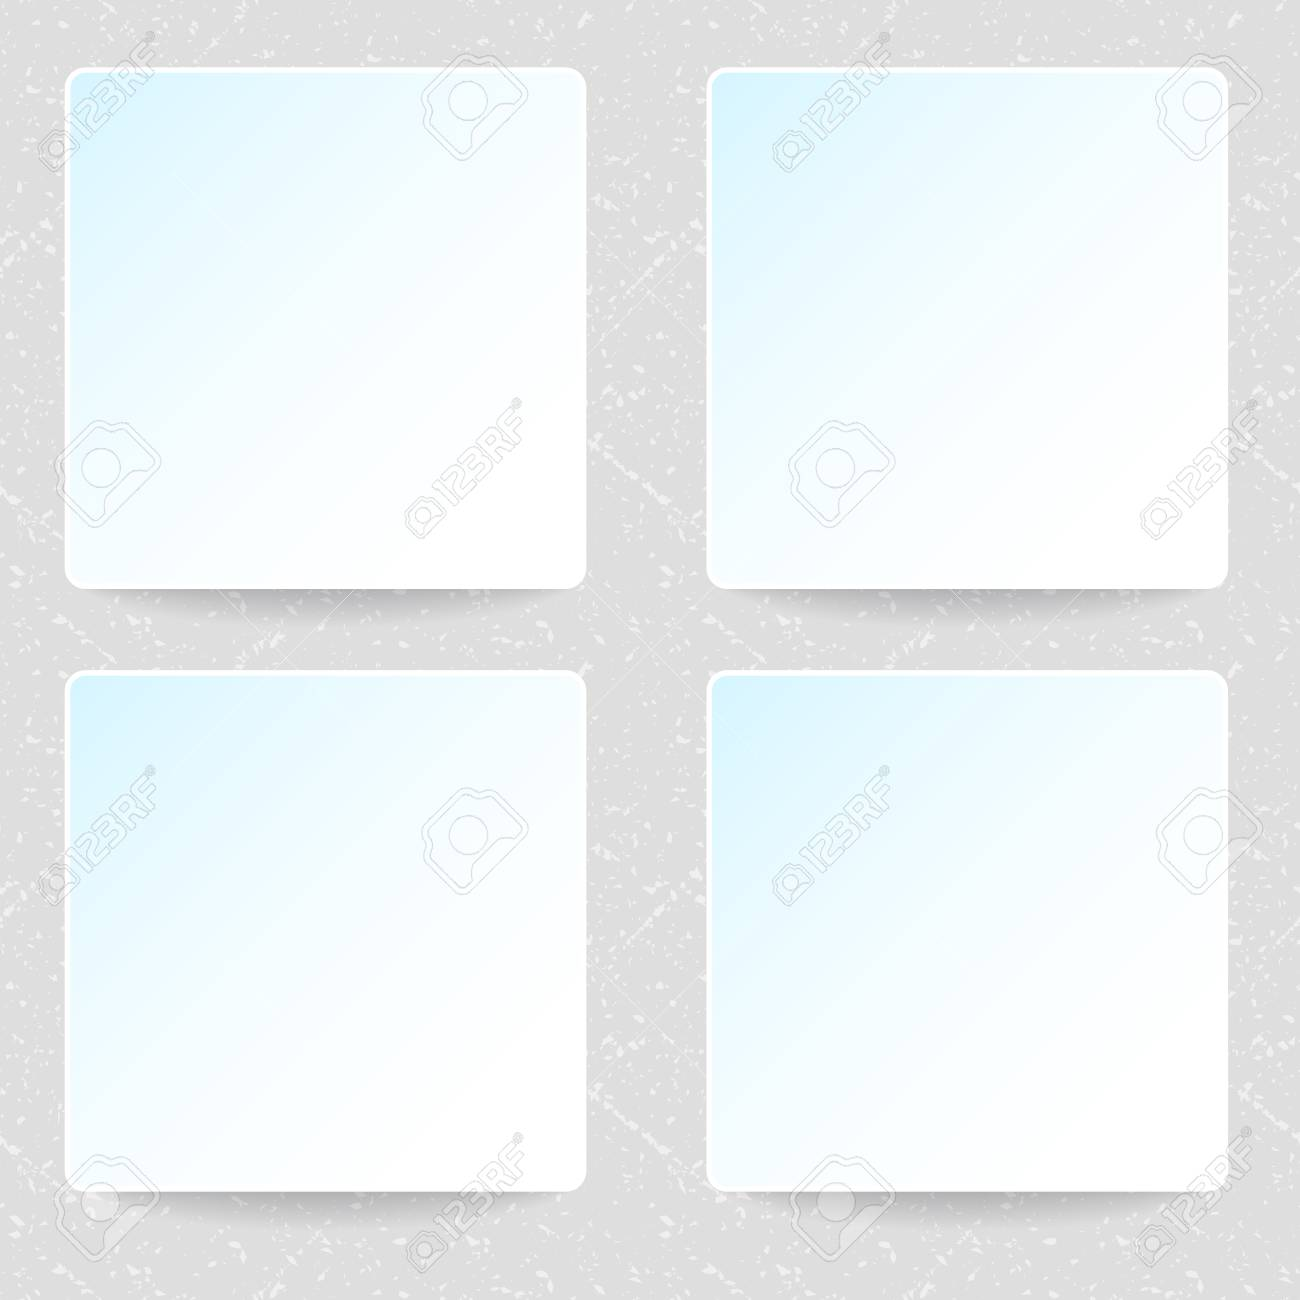 Set Of Greeting Cards Templates Vector Empty Mock Ups Stock Photo